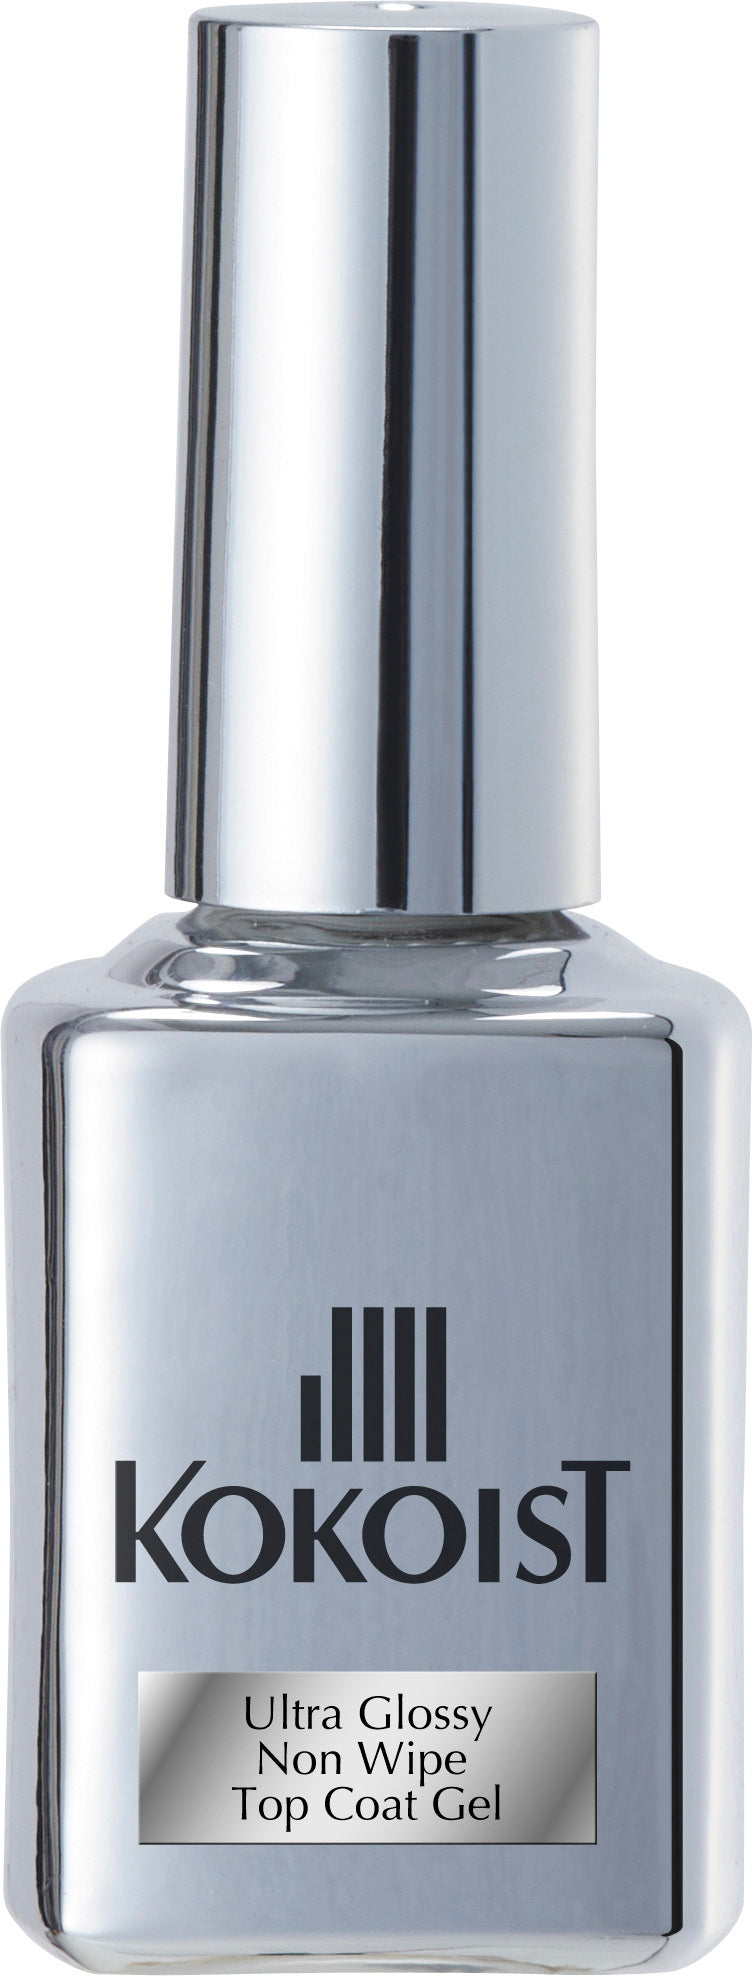 Ultra Glossy Non Wipe Top Coat 15ml